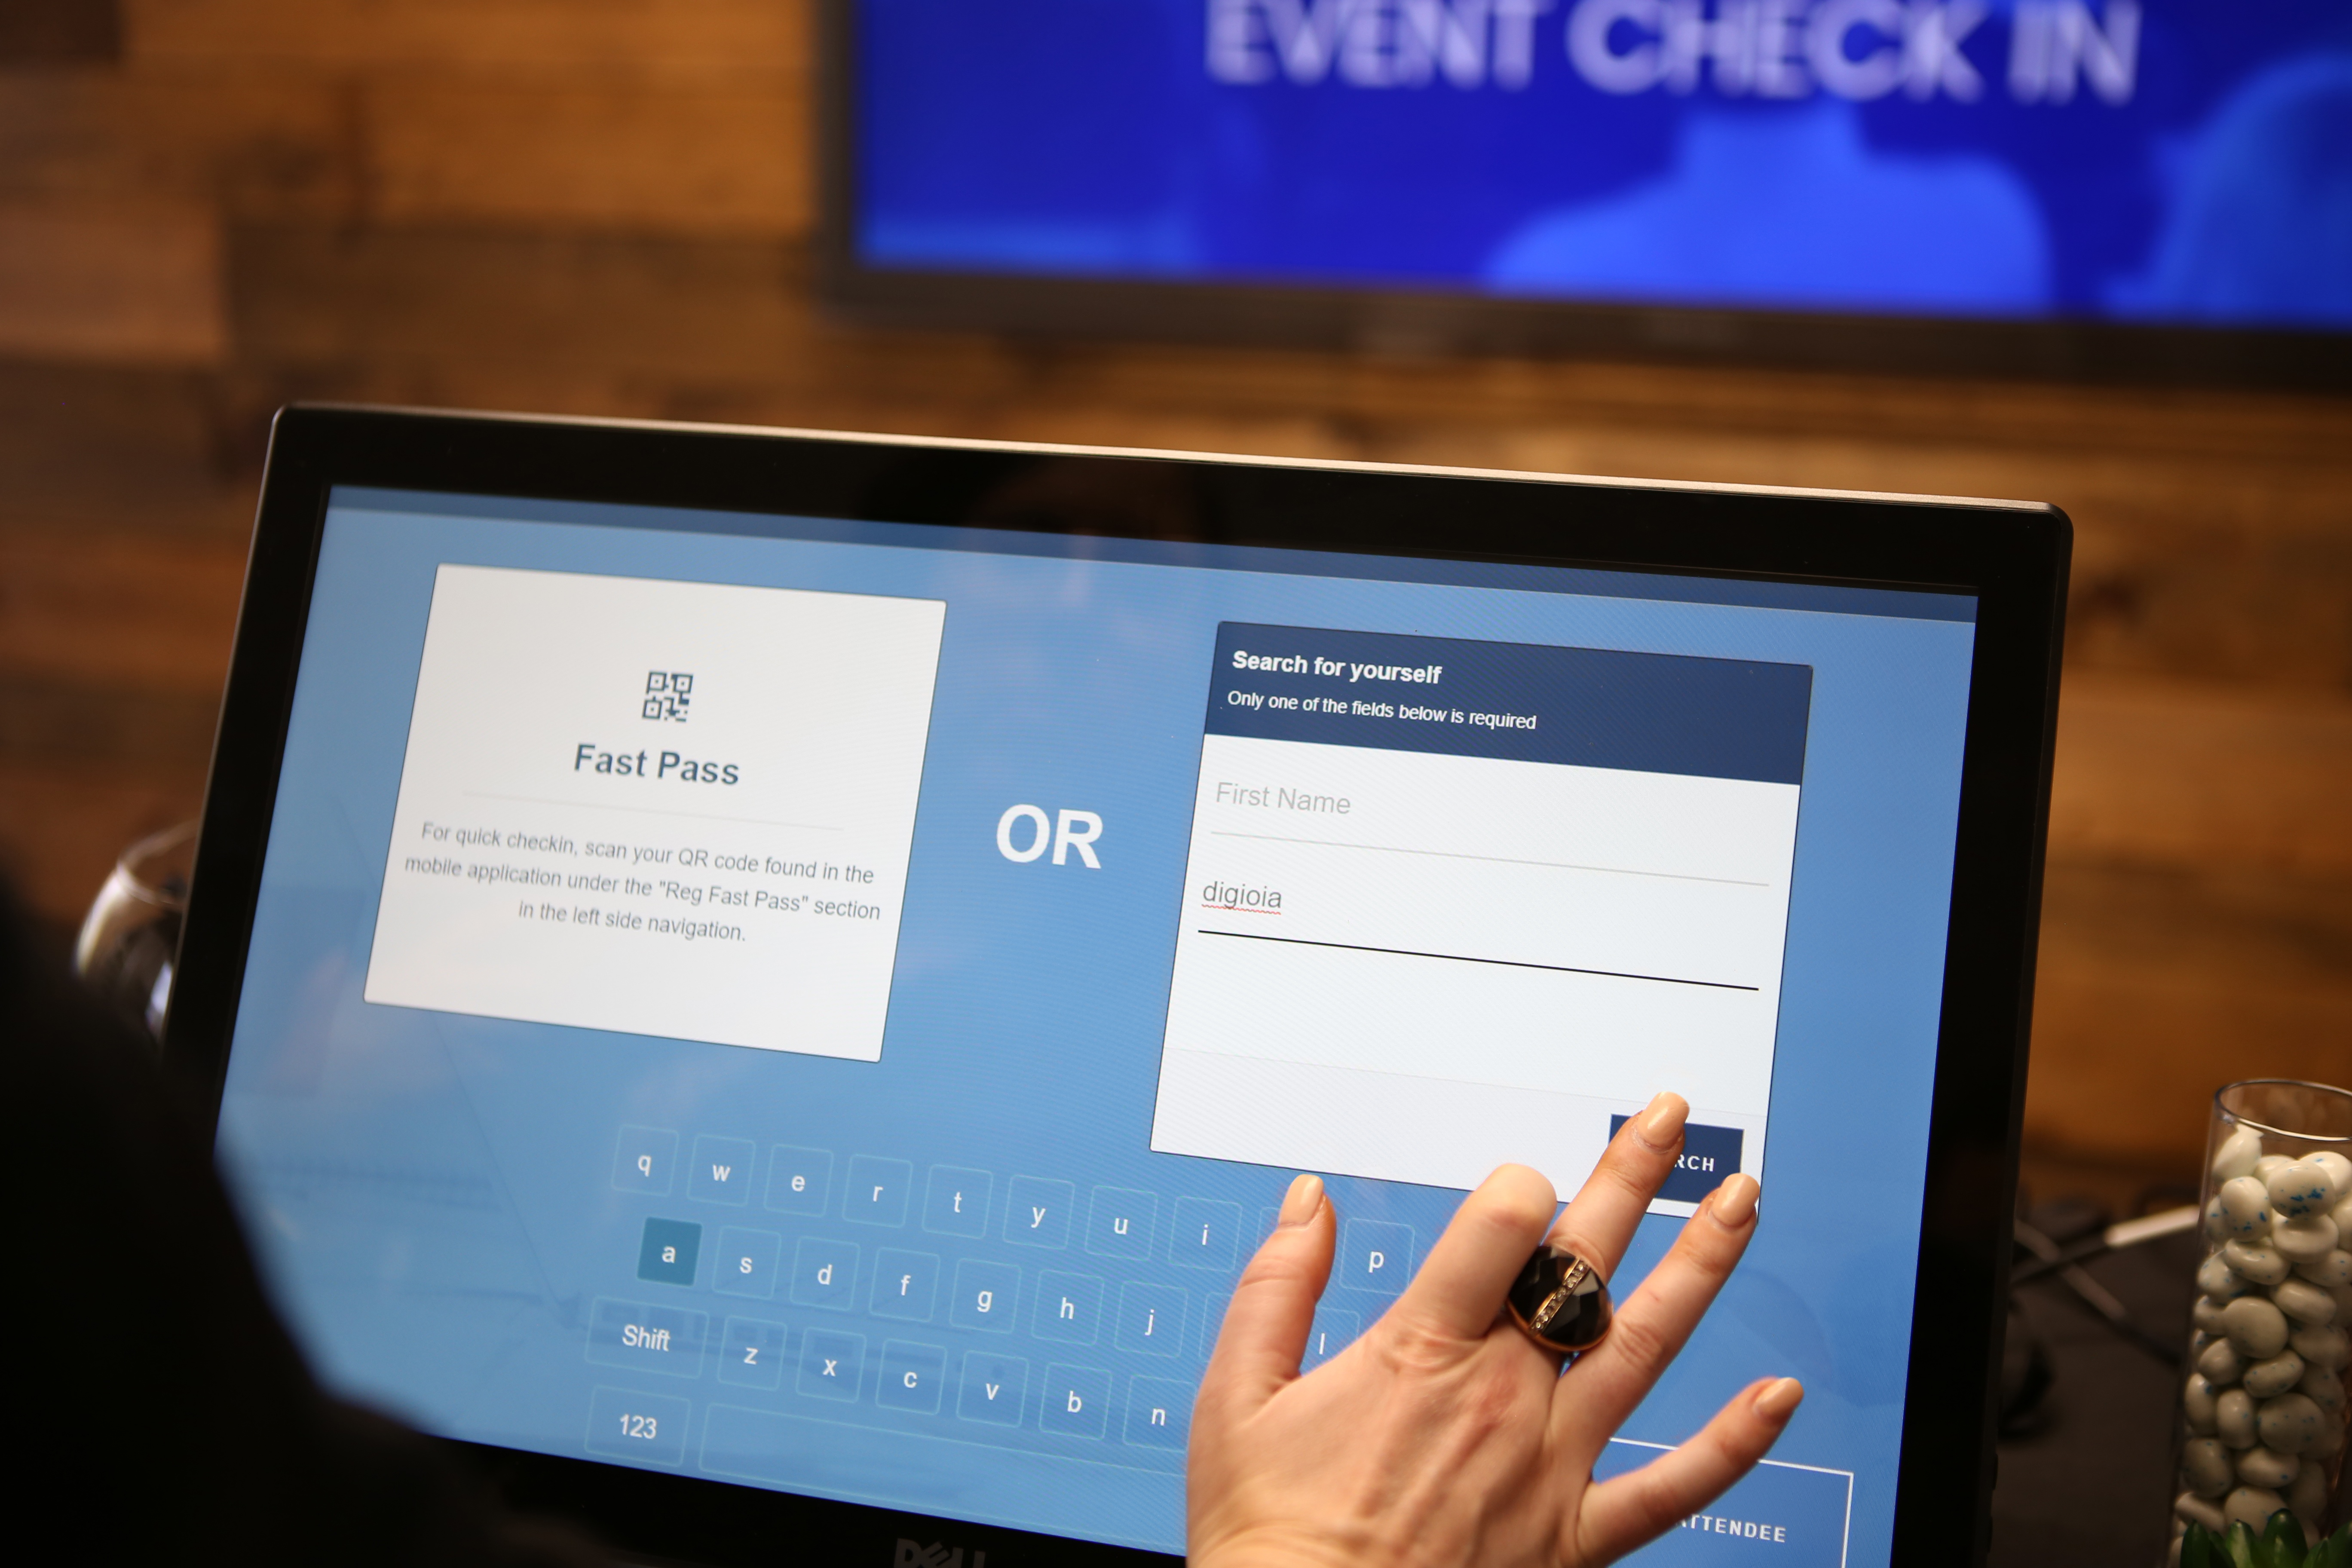 Woman checking in with an online kiosk